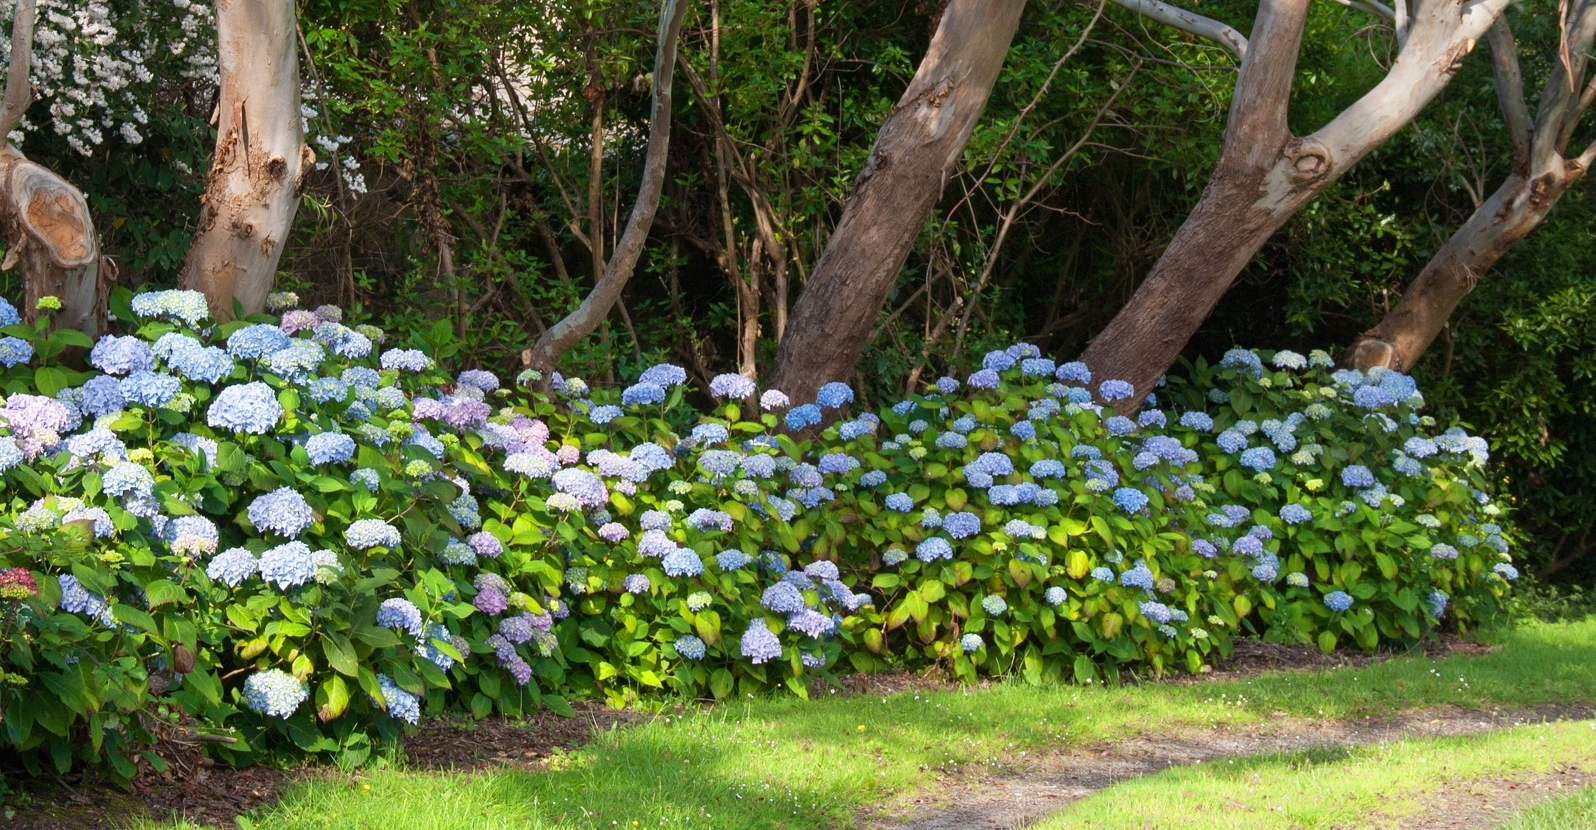 How to Change the Flower Color of Bigleaf Hydrangea